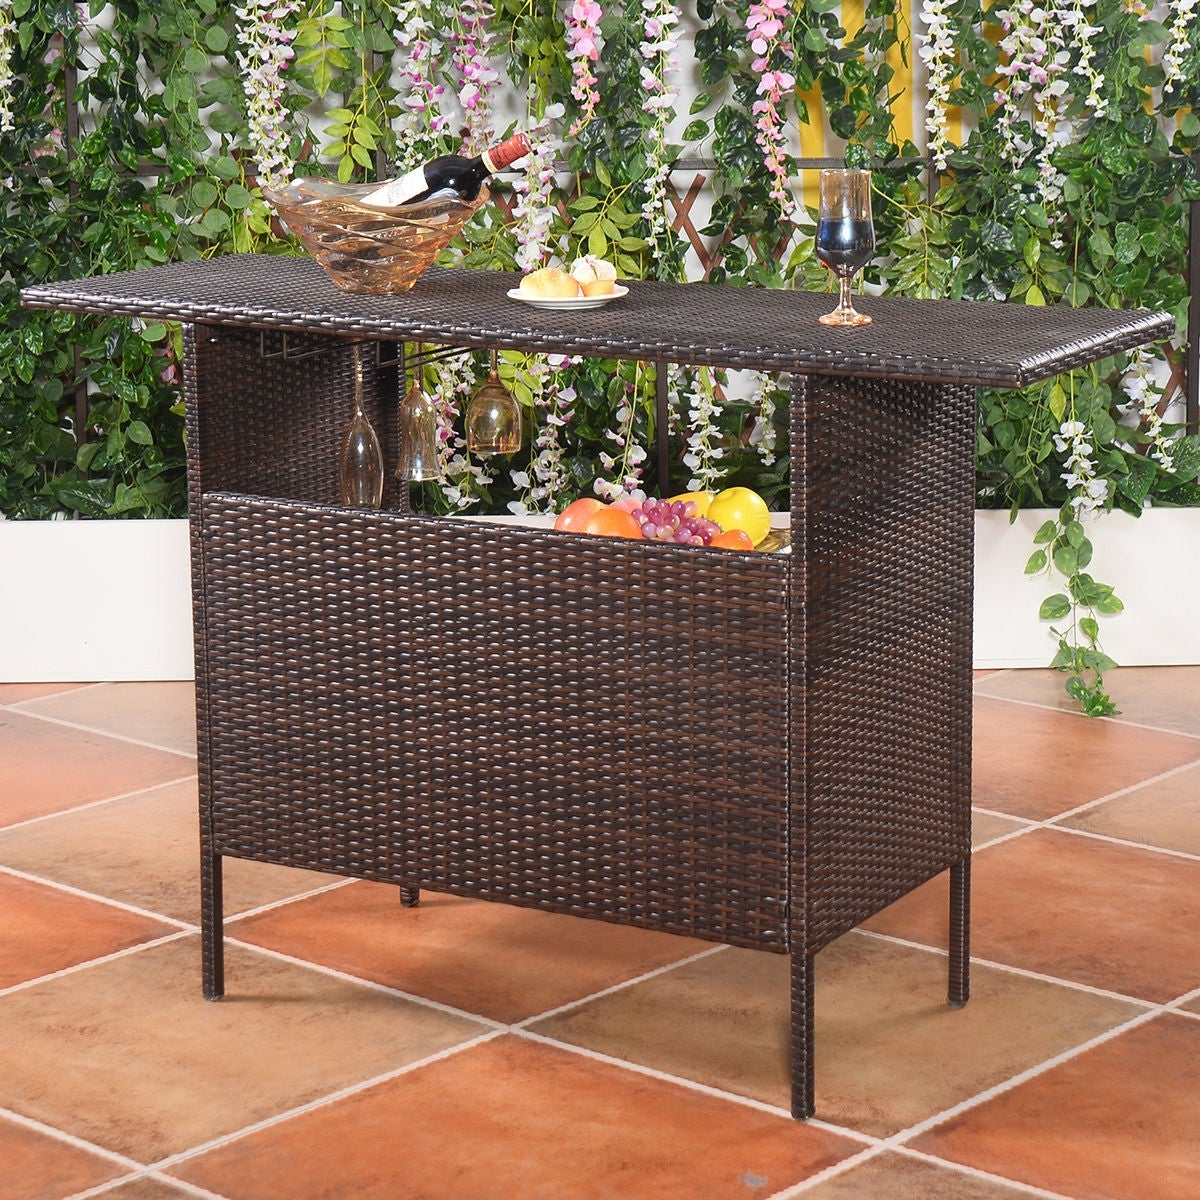 Costway Outdoor Rattan Wicker Bar Counter Table Shelves Garden Patio on gym furniture, garden furniture covers, fire pits, bedroom furniture, teak outdoor furniture, garden white furniture, patio heaters, patio furniture cushions, garden furniture sets, wicker patio furniture, wood patio furniture, garden furniture uk, solar powered furniture, outdoor patio furniture, wrought iron patio furniture, garden canopy replacement, garden wood furniture, garden antiques, garden furniture cushions, garden veranda furniture, garden room furniture, teak patio furniture, painting garden furniture, outdoor furniture, fairy garden furniture, outside garden furniture, aluminum patio furniture, patio cushions, teak furniture, garden benches, garden stone furniture, patio chairs, garden dining furniture, patio furniture covers, patio sets, oak garden furniture, patio umbrellas, wicker furniture, garden awnings,